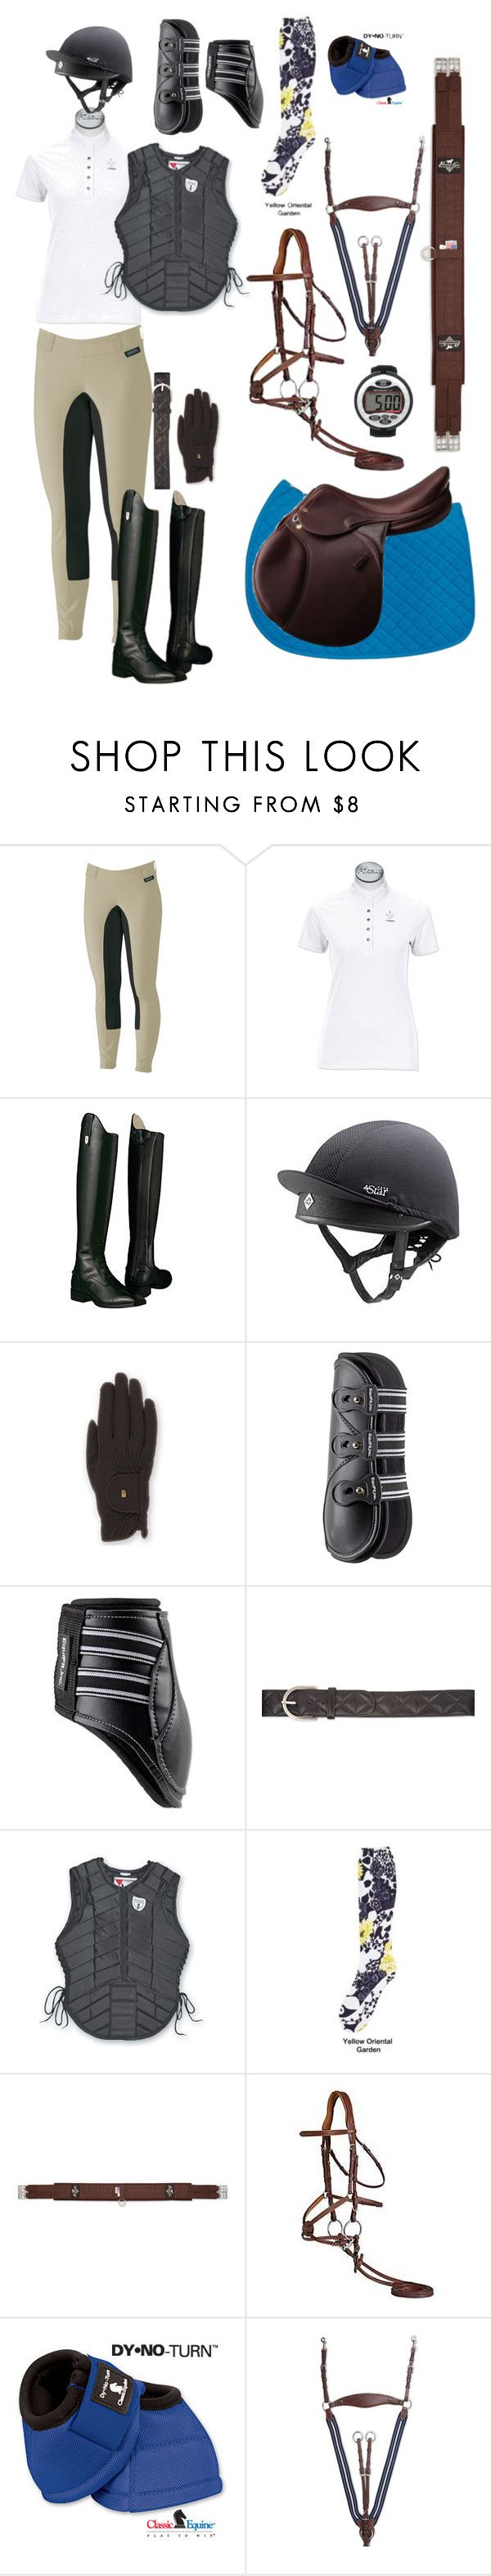 Cross country 2 by karleneduv on Polyvore featuring Ariat, Roeckl and country